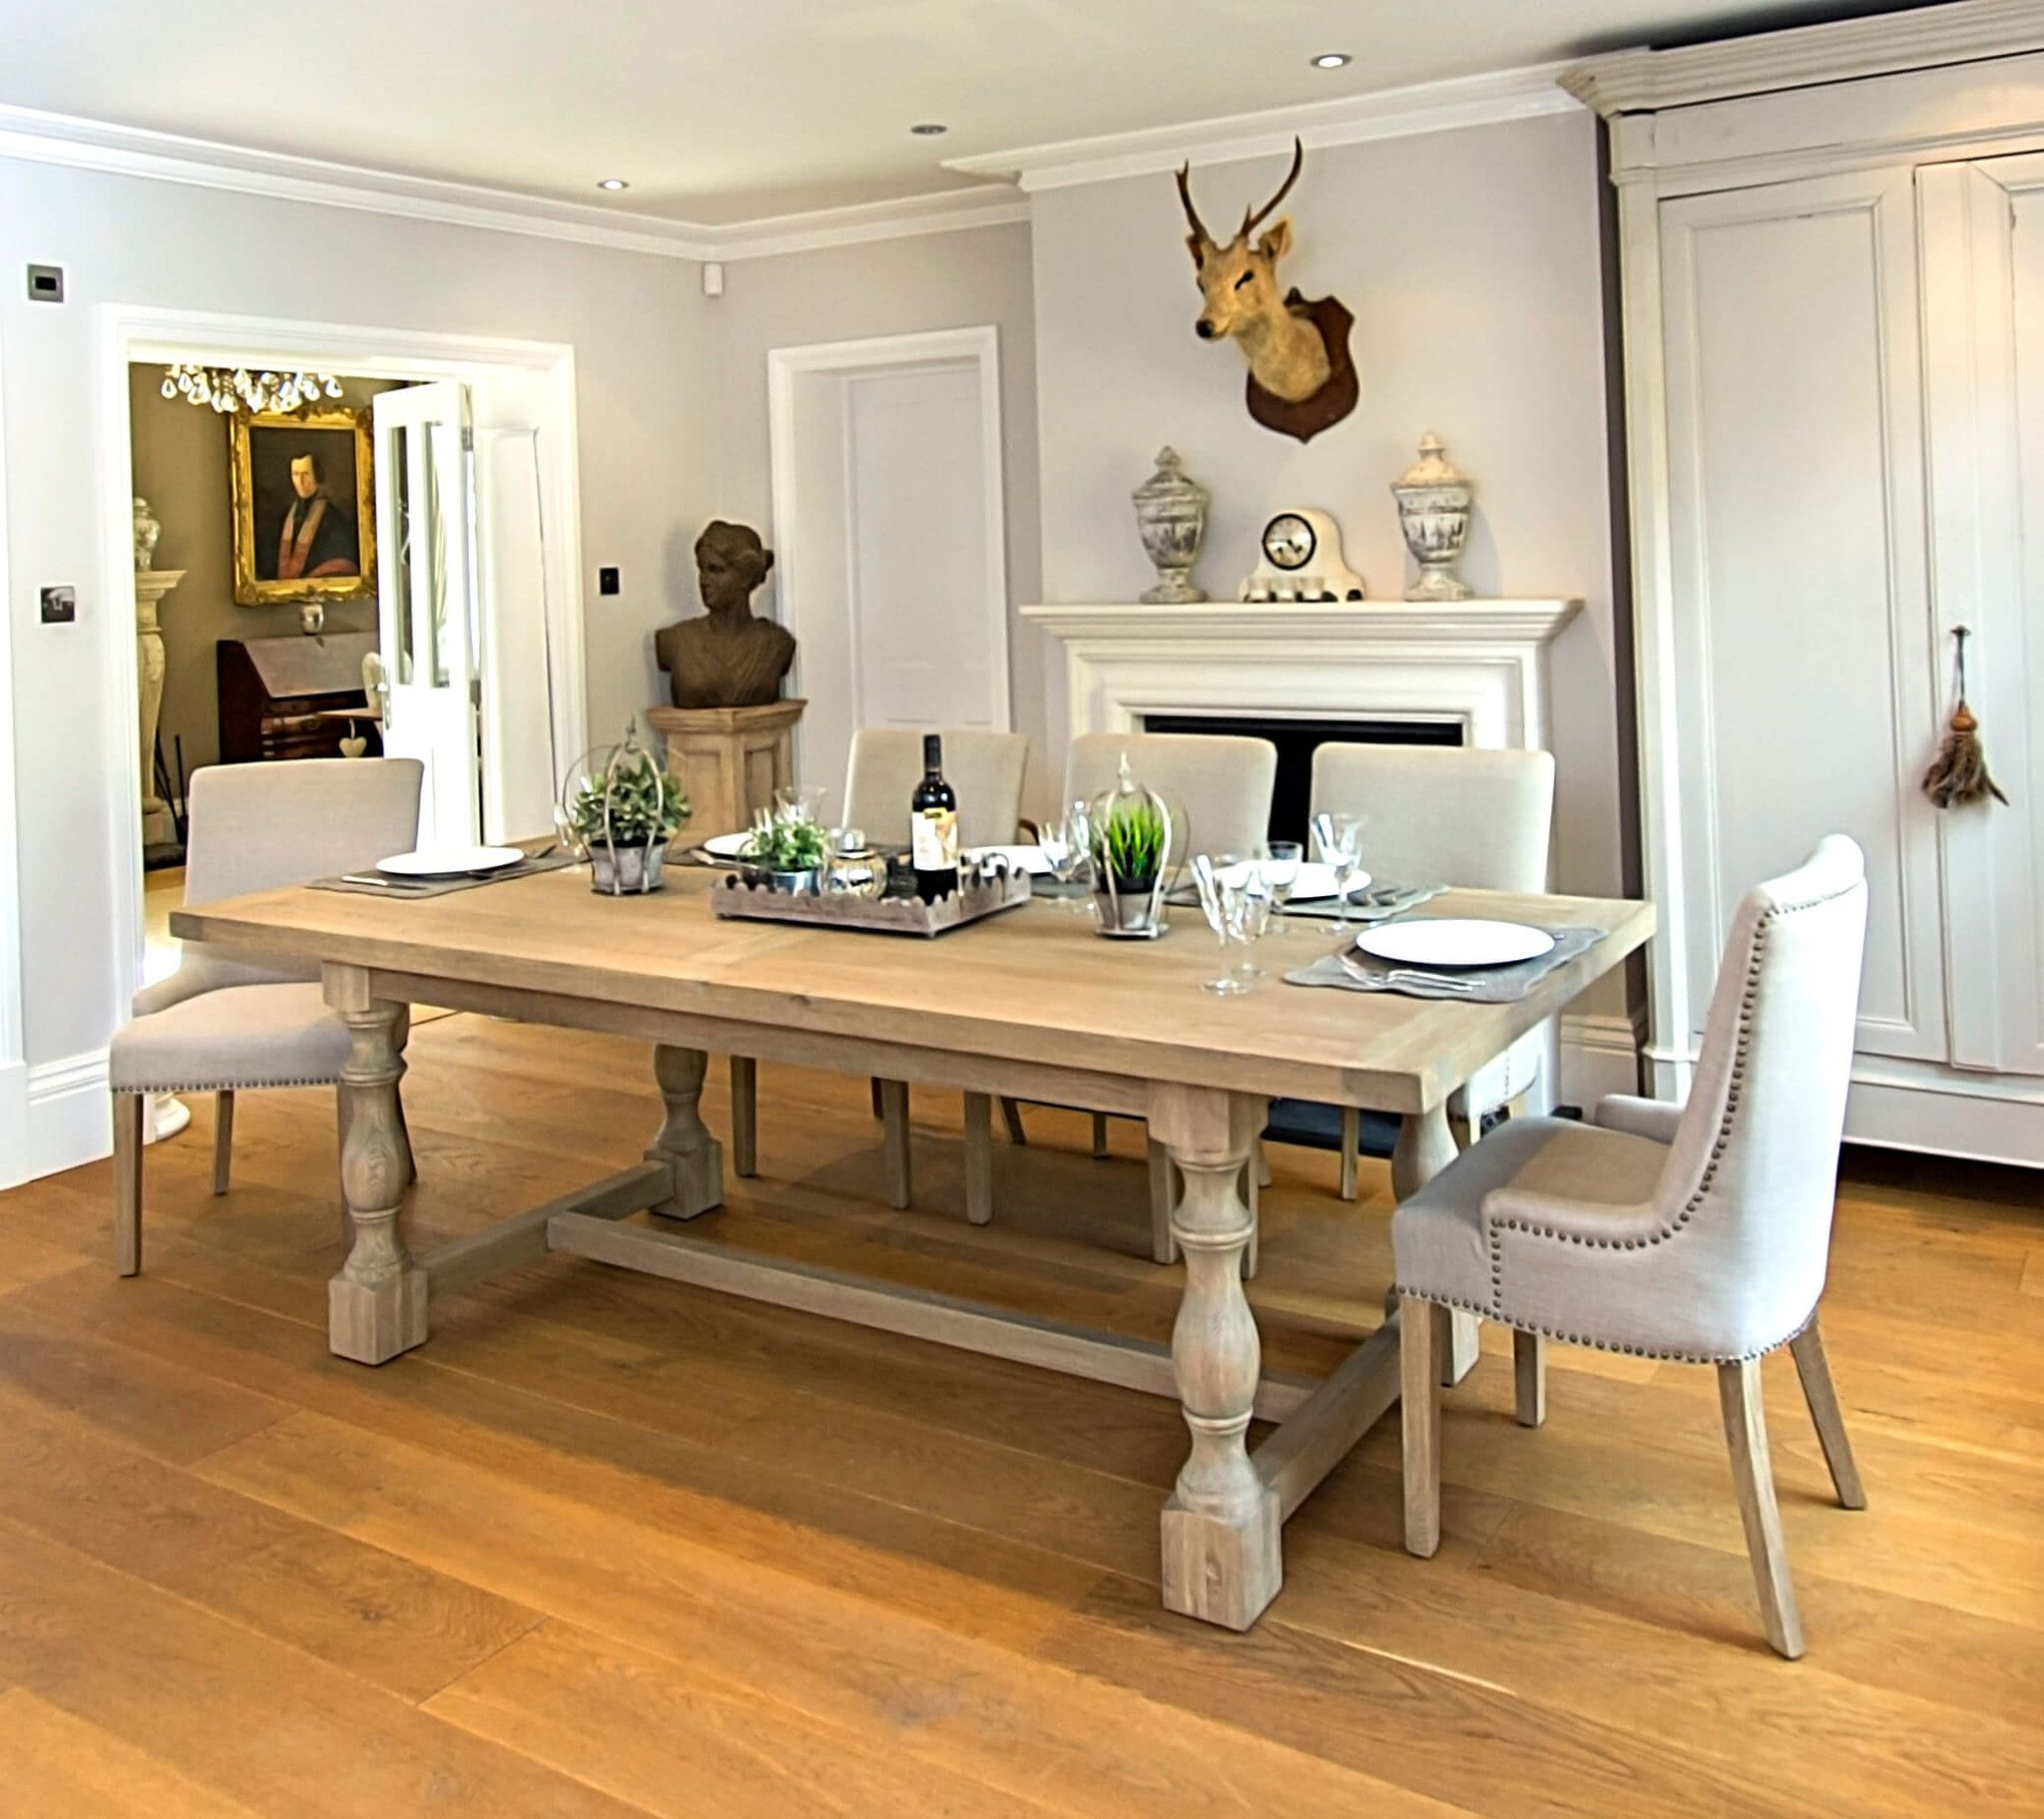 Montague Large Weathered Oak Rectangular Dining Table Large